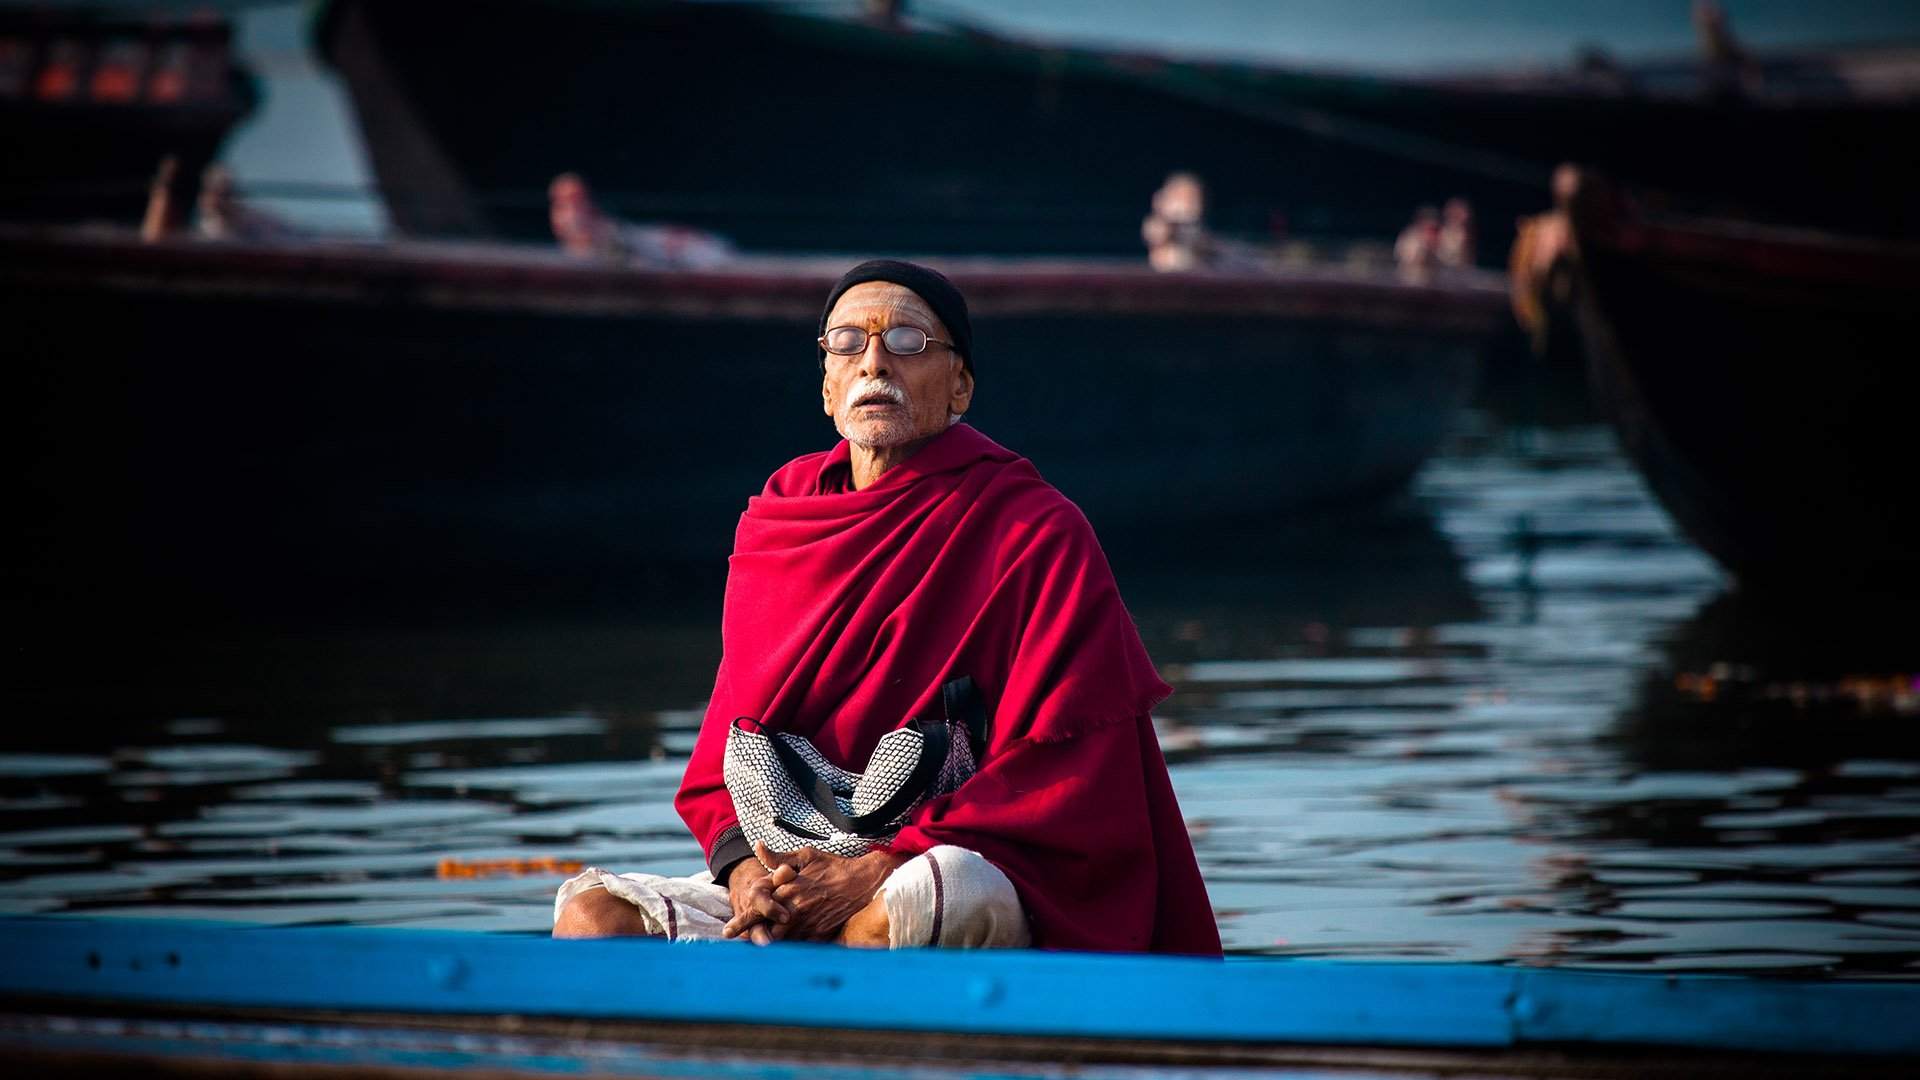 https://spatulamedia.ca/wp-content/uploads/2019/05/prayers-for-the-ganges.jpg